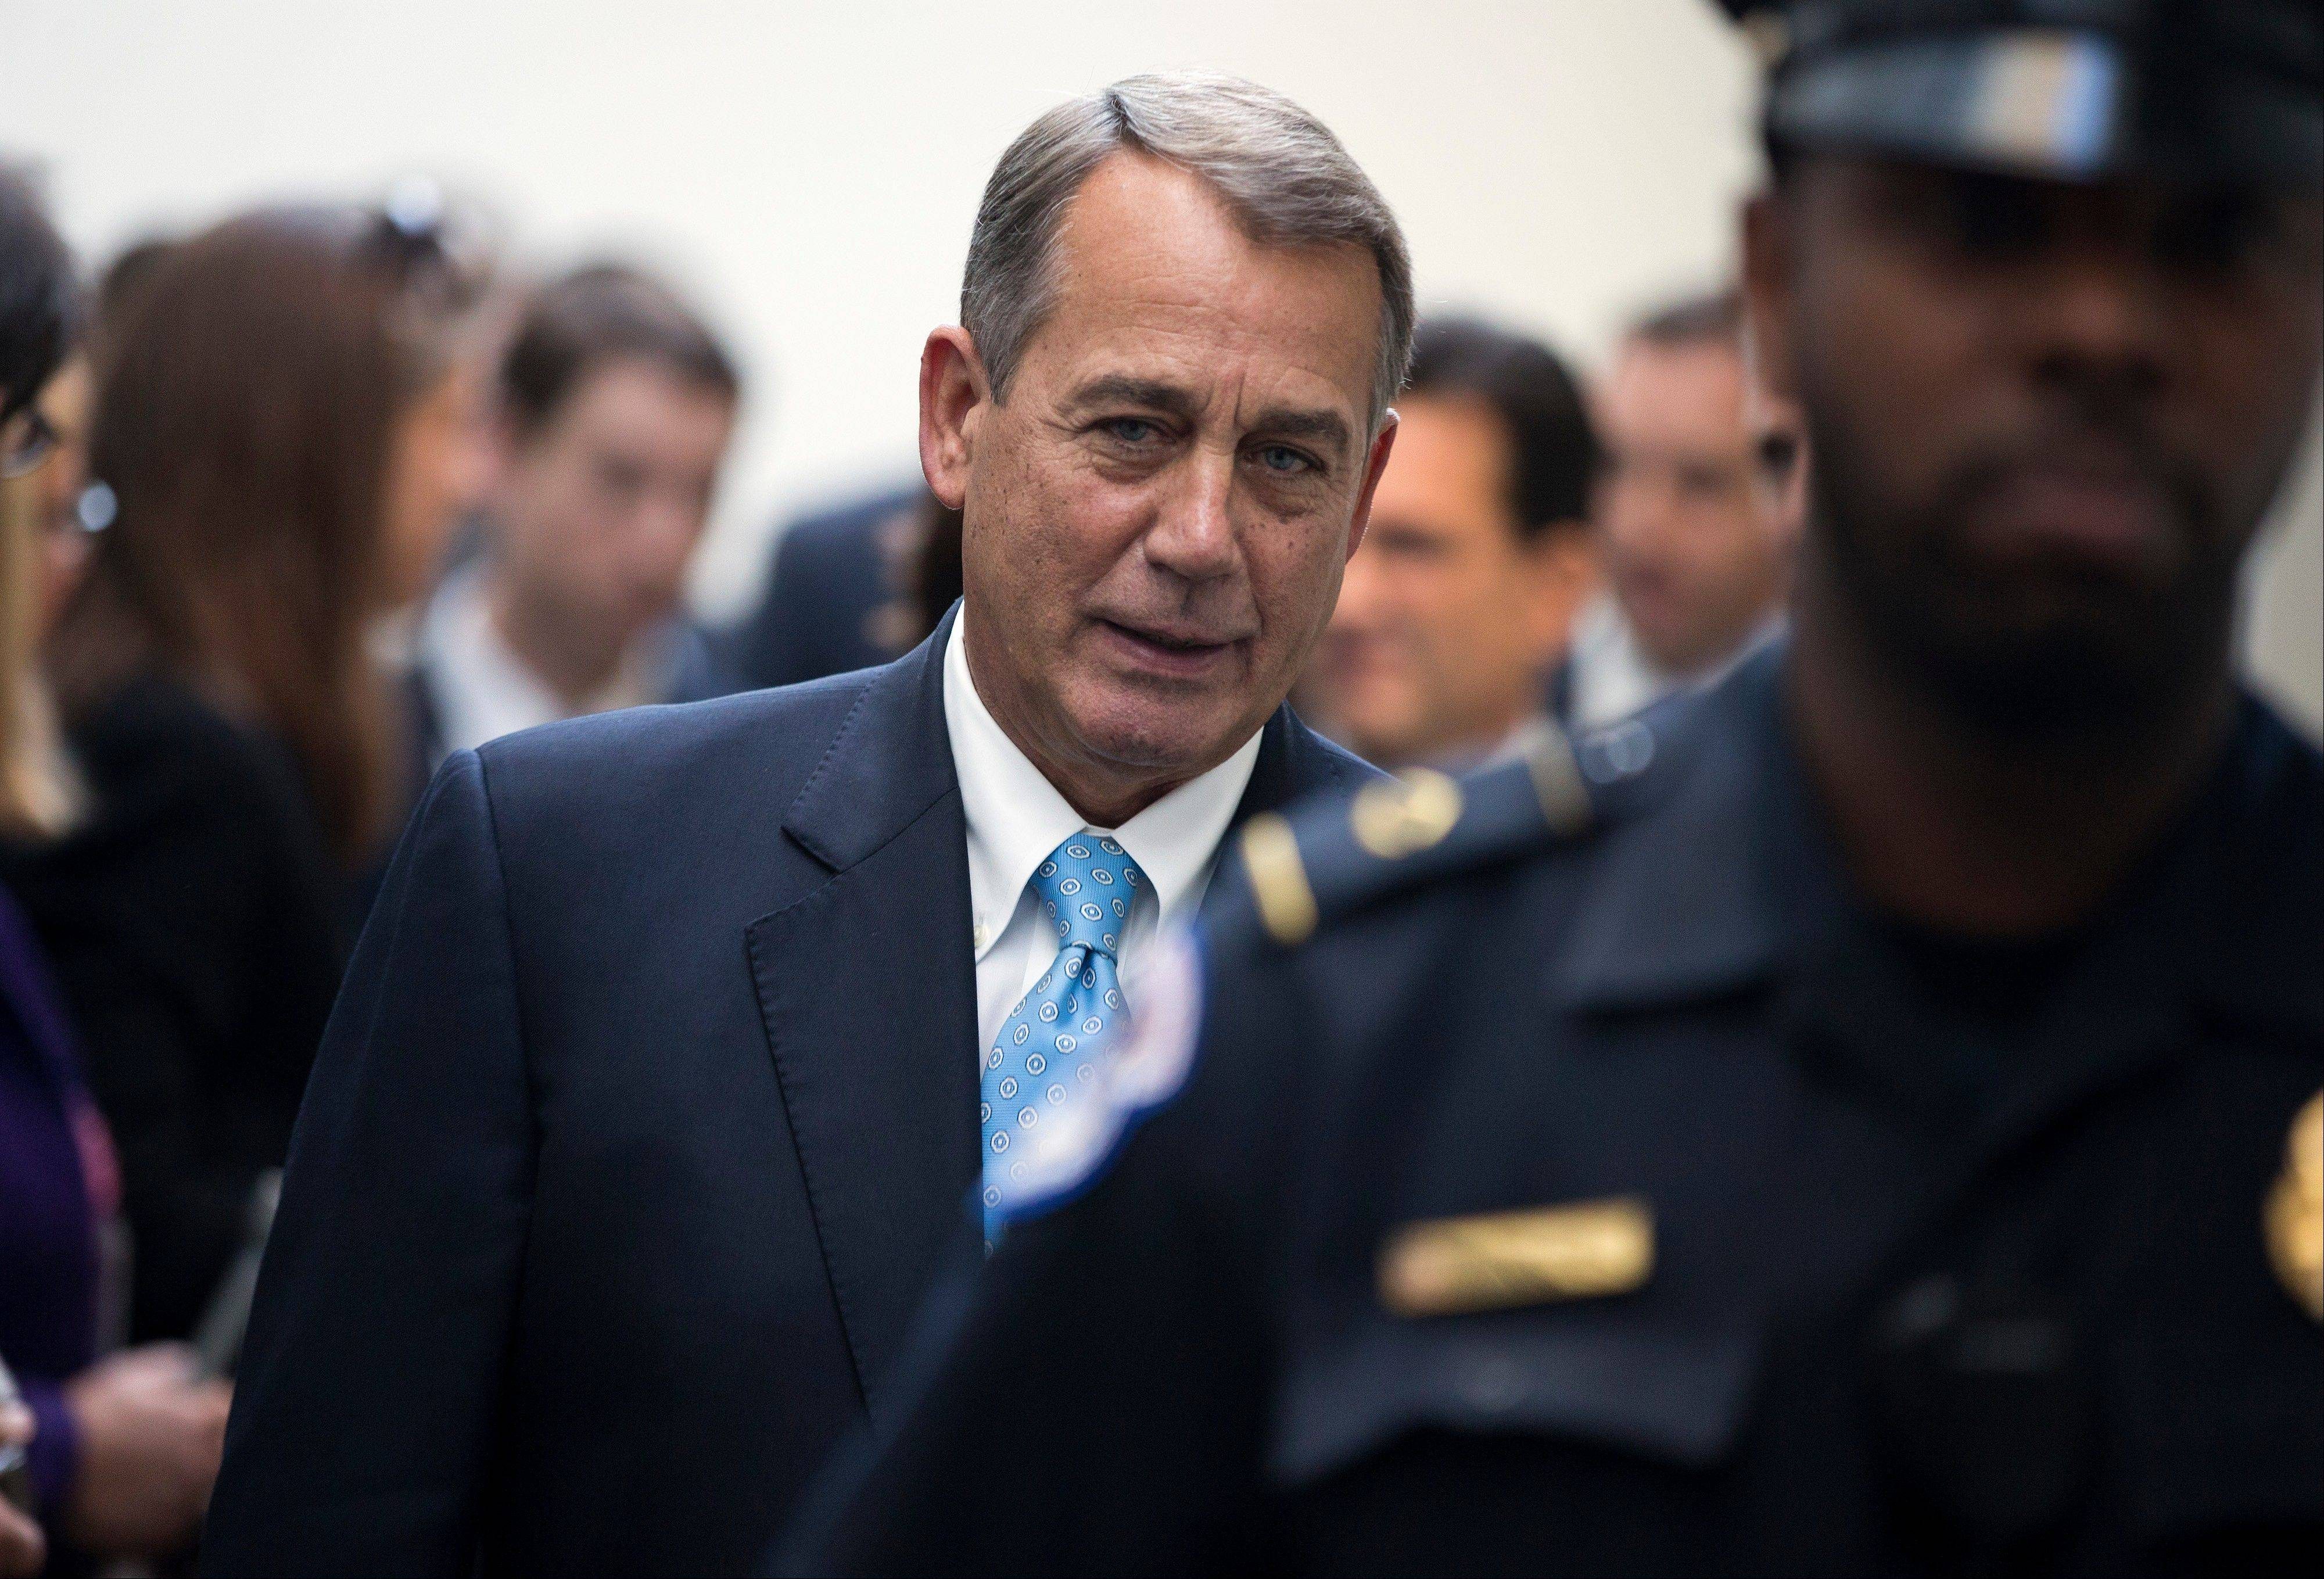 Speaker of the House Rep. John Boehner and other House GOP leaders Tuesday floated a plan to fellow Republicans to counter an emerging Senate deal to reopen the government and forestall an economy-rattling default on U.S. obligations. But the plan got mixed reviews from the rank and file, and it was not clear whether it could pass the chamber.